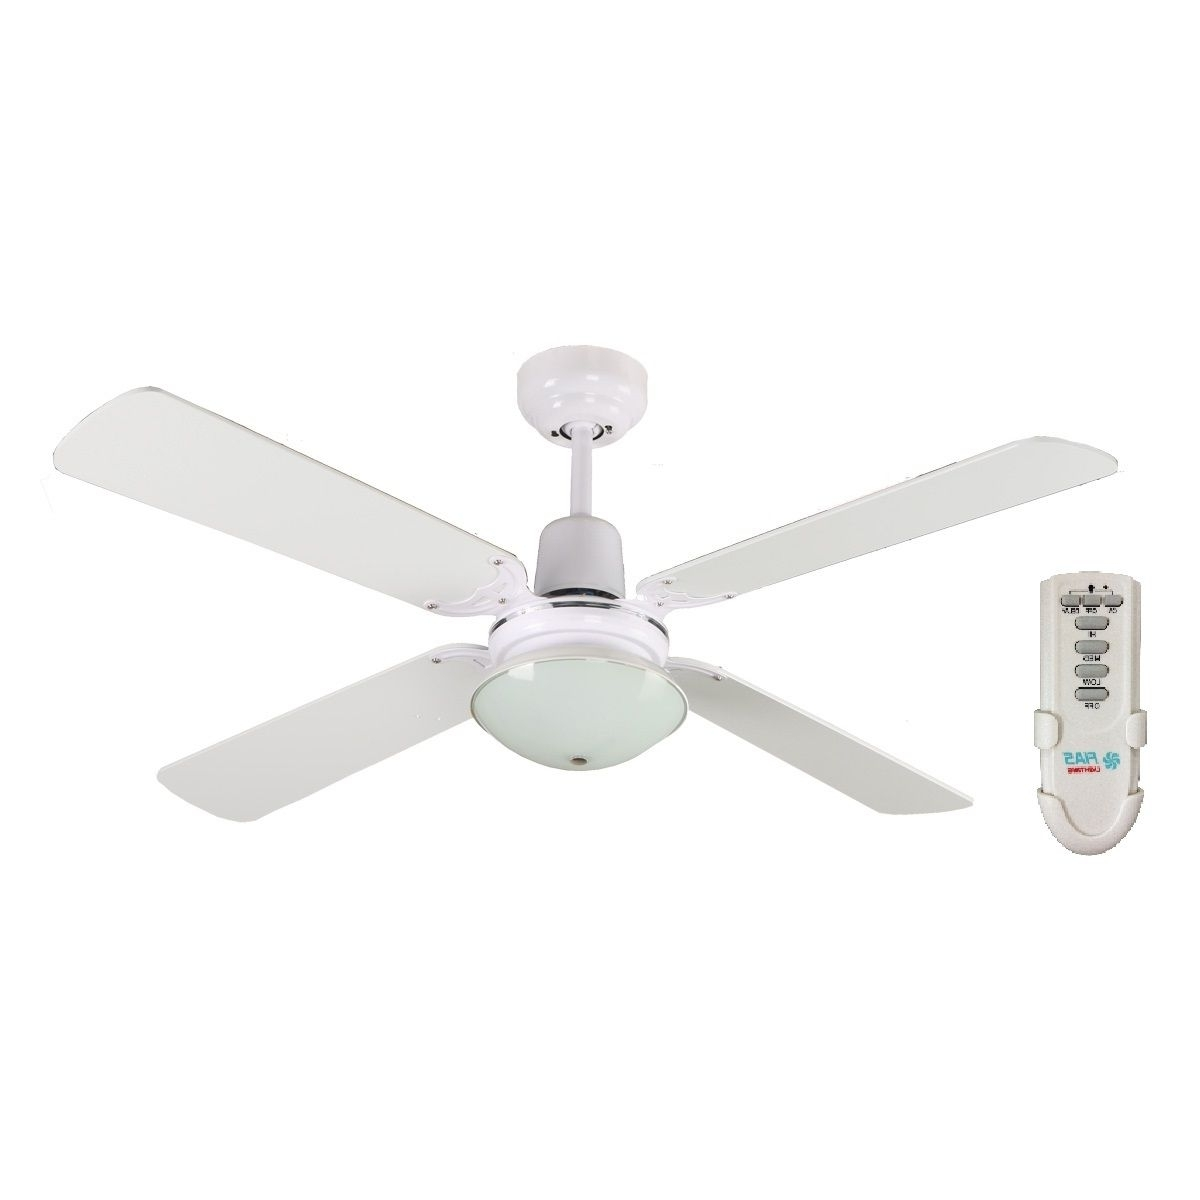 Outdoor Ceiling Fans At Bunnings Regarding 2019 Martec Ceiling Fans Bunnings (View 13 of 20)